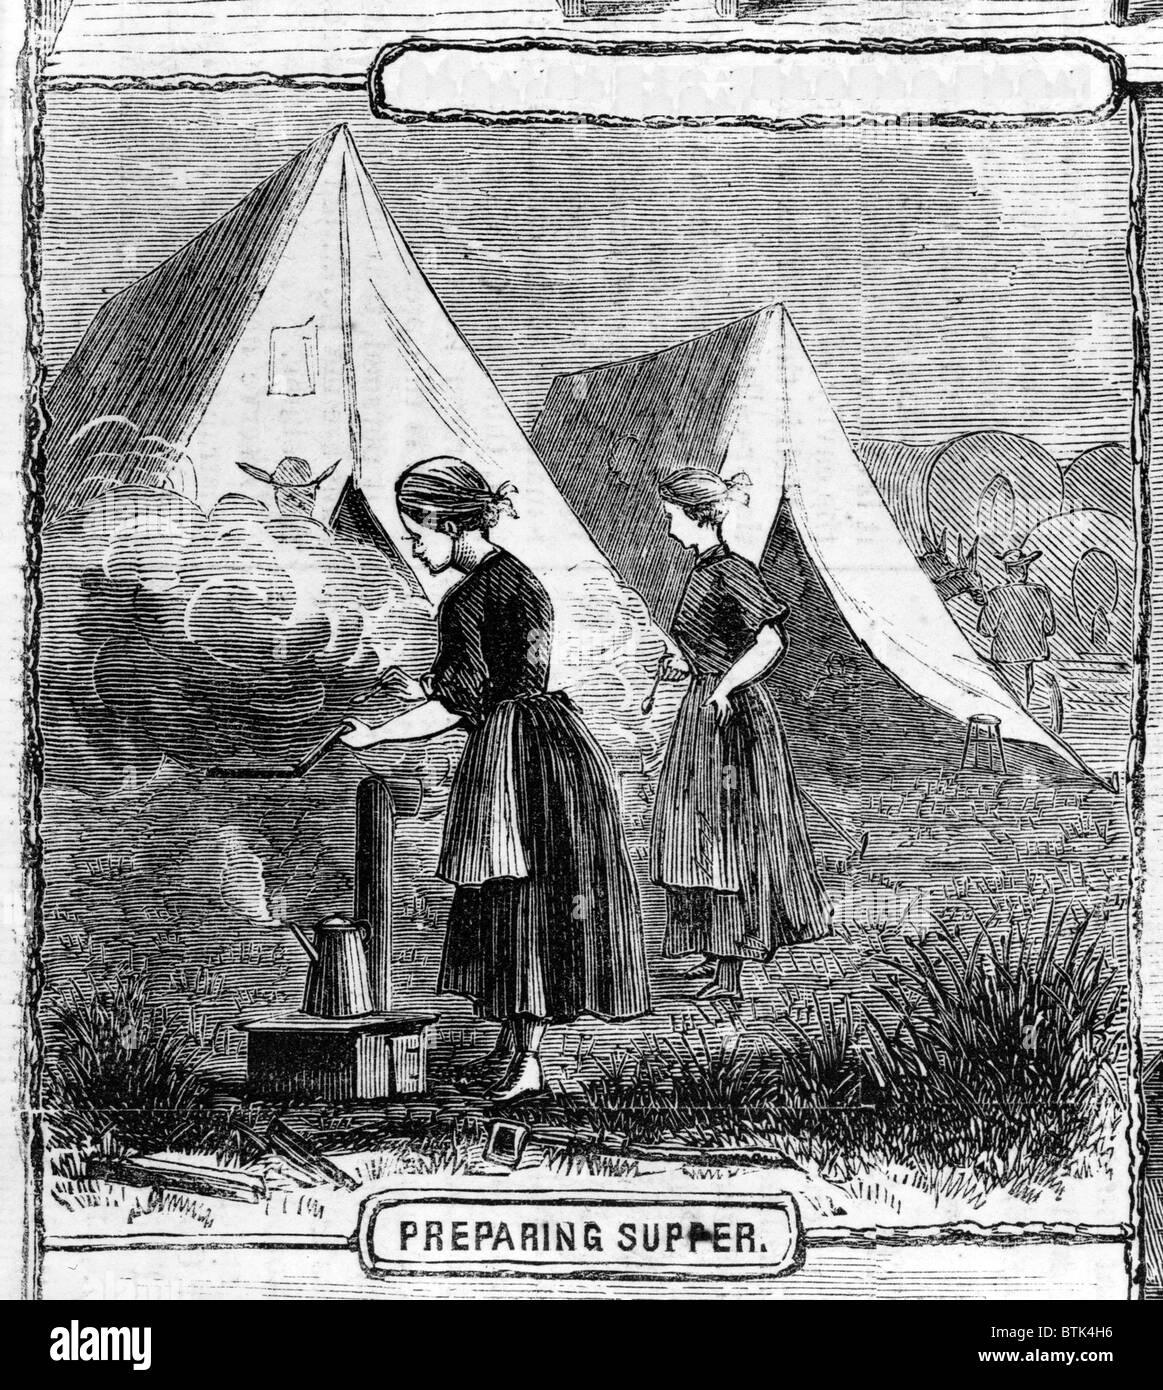 Life on the plains: preparing supper. from sketches by Mr. James F. Gookins Stock Photo